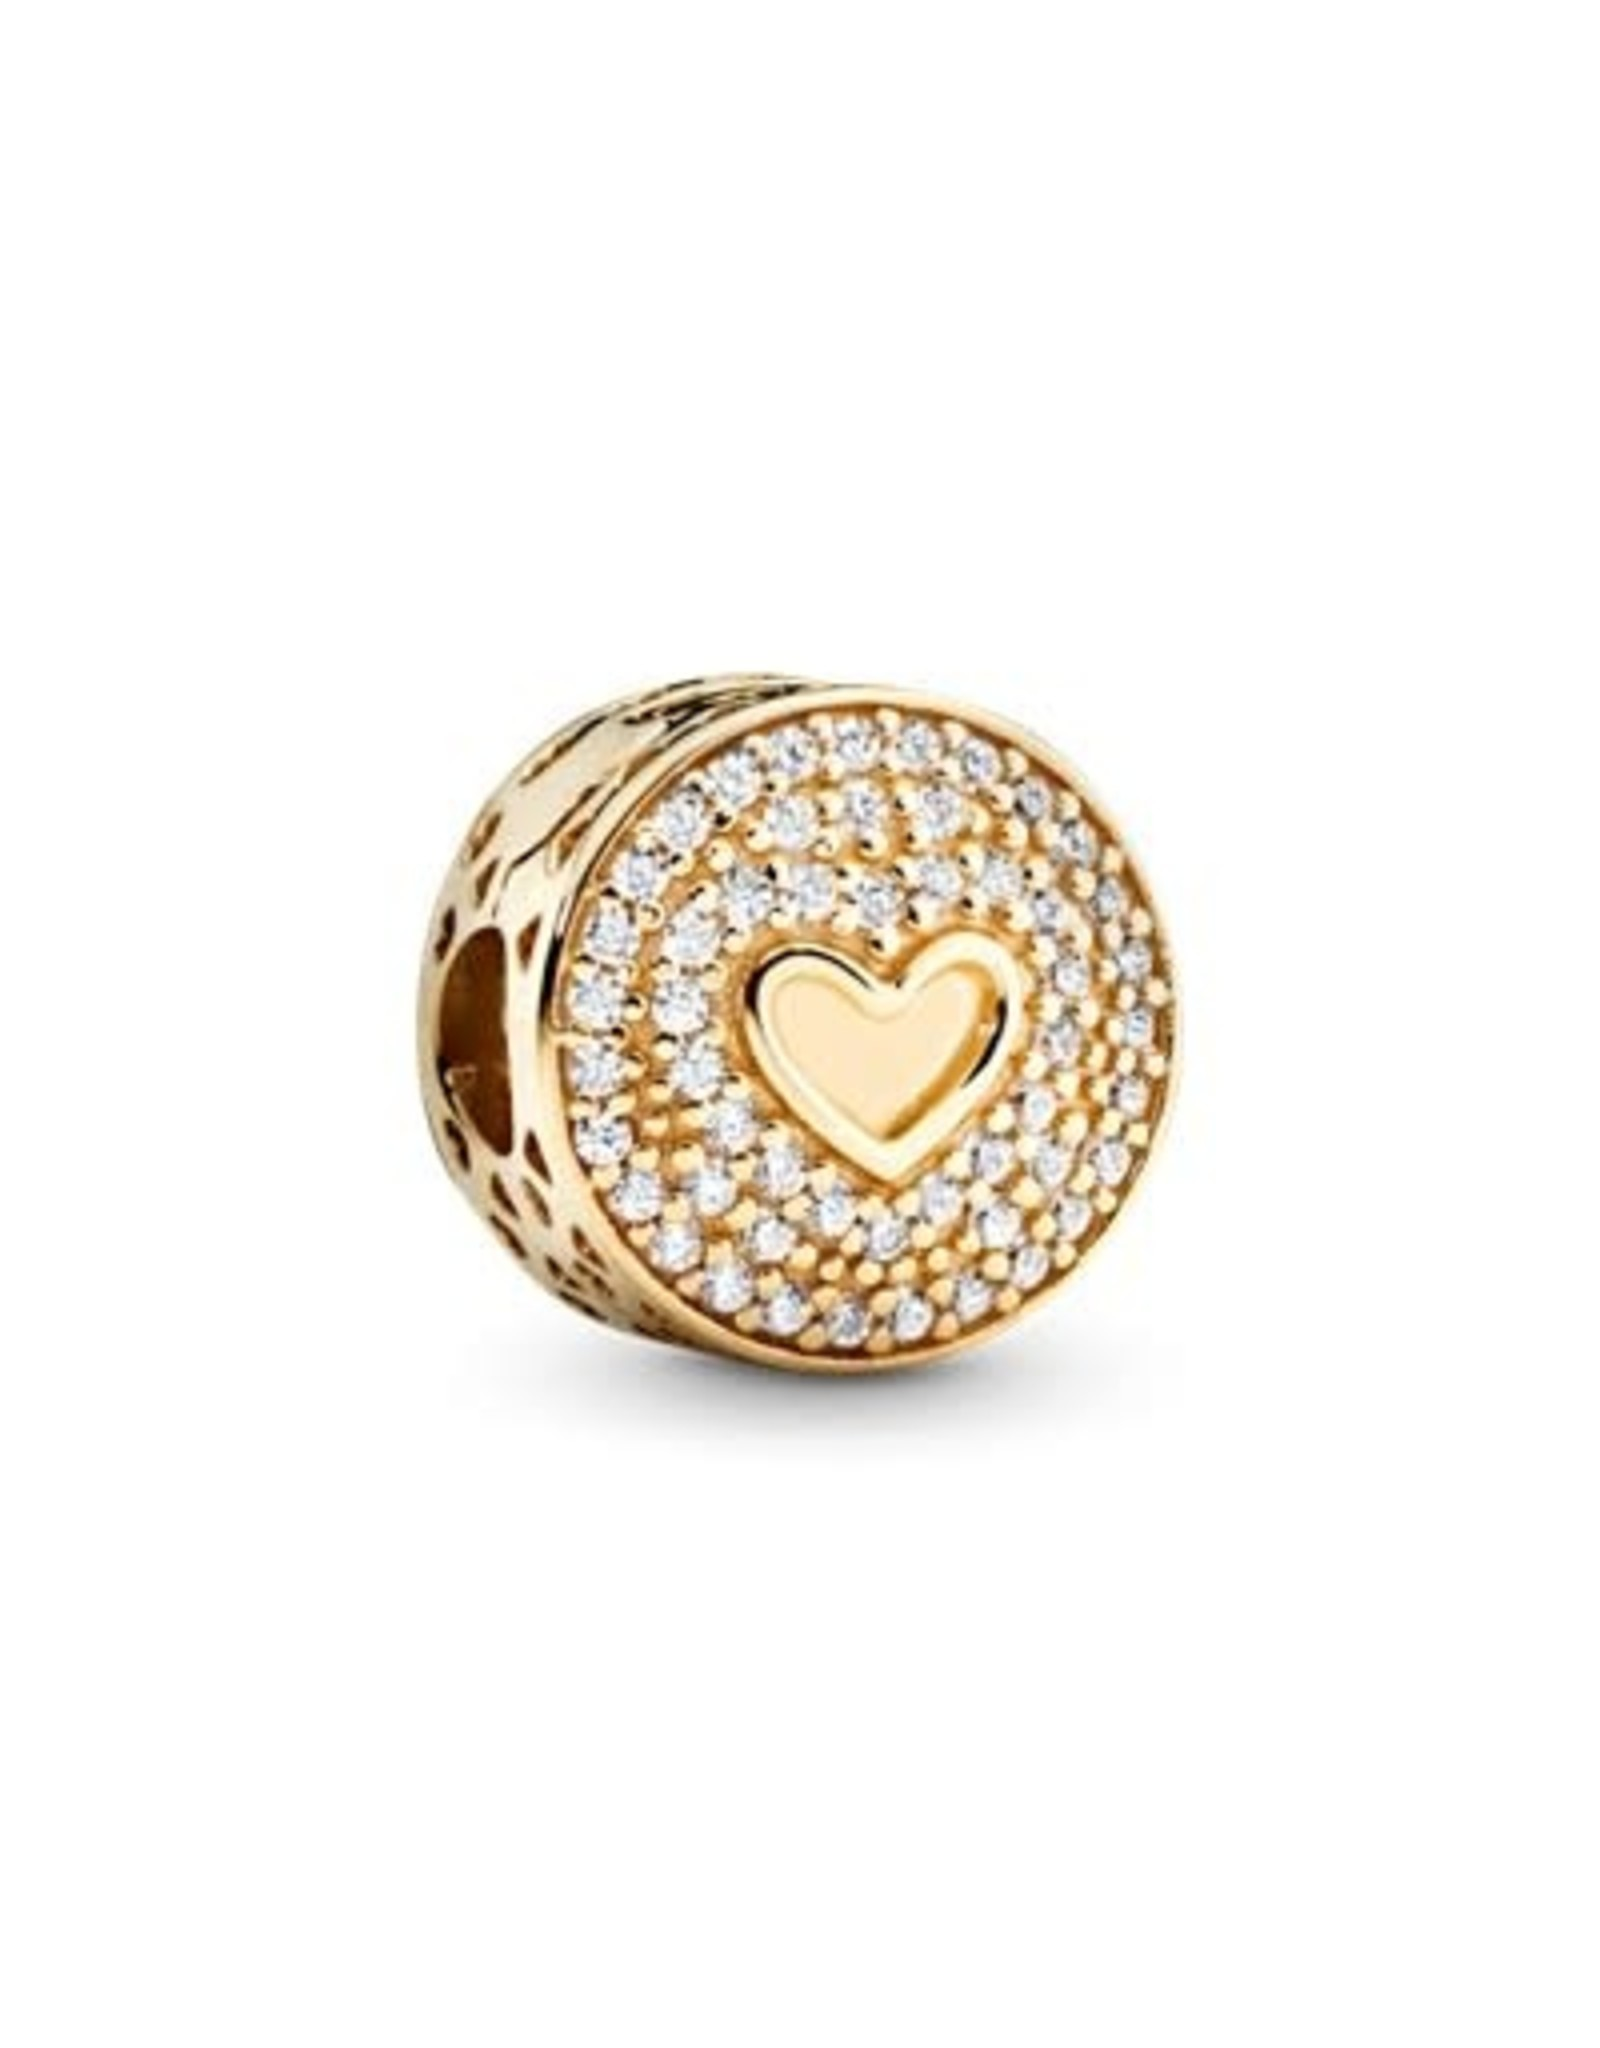 Pandora Pandora Heart Of Luxury, Clip, Clear CZ ,14K Gold